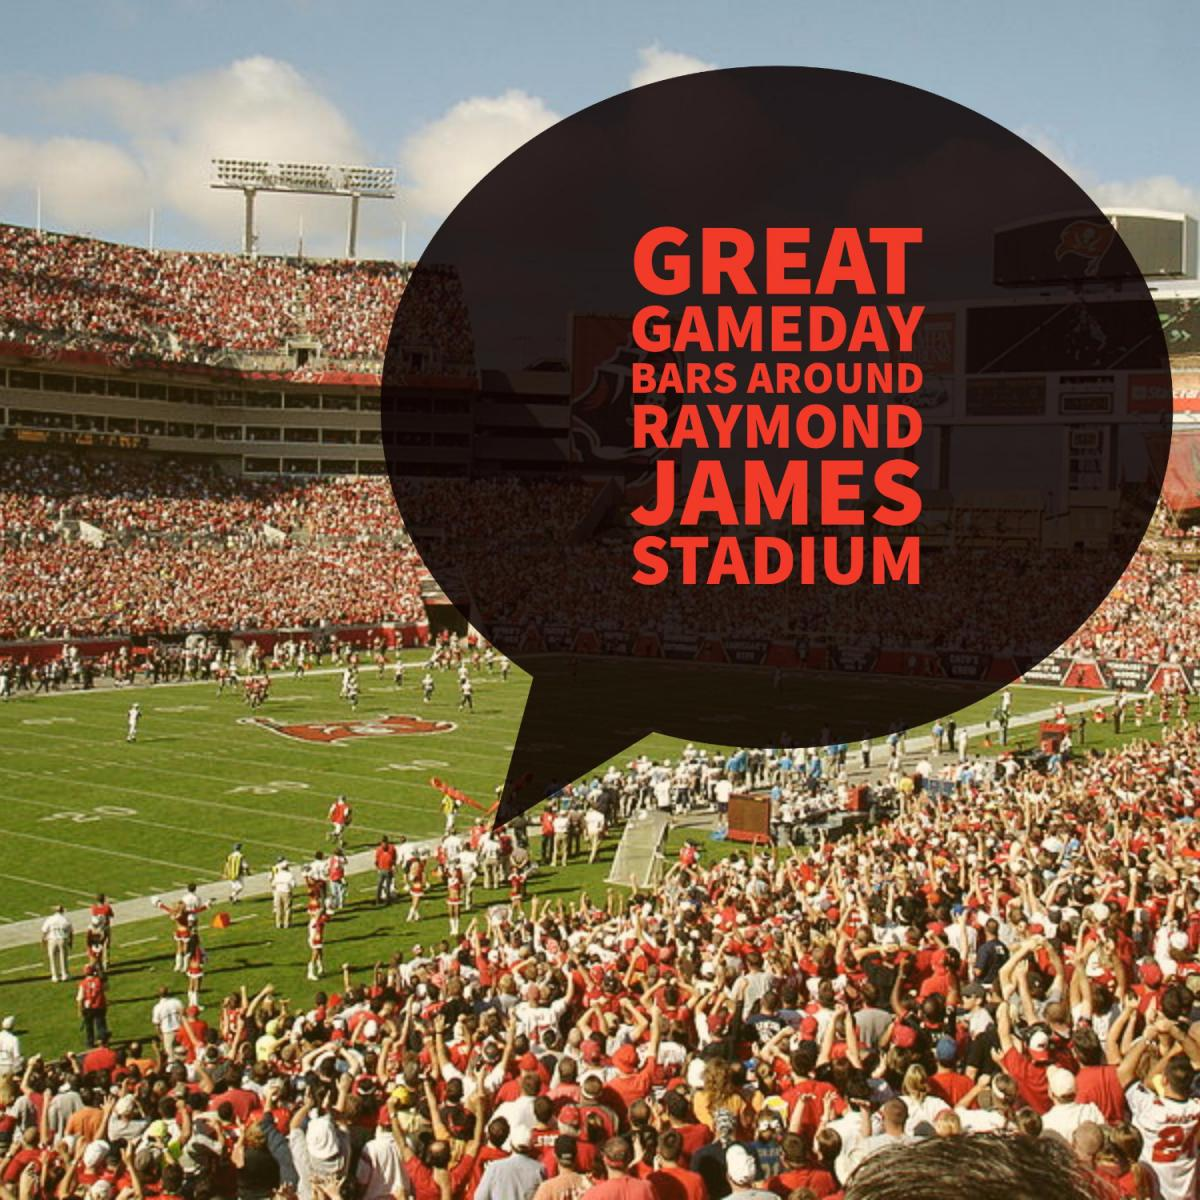 Great Gameday Bars Around Raymond James Stadium